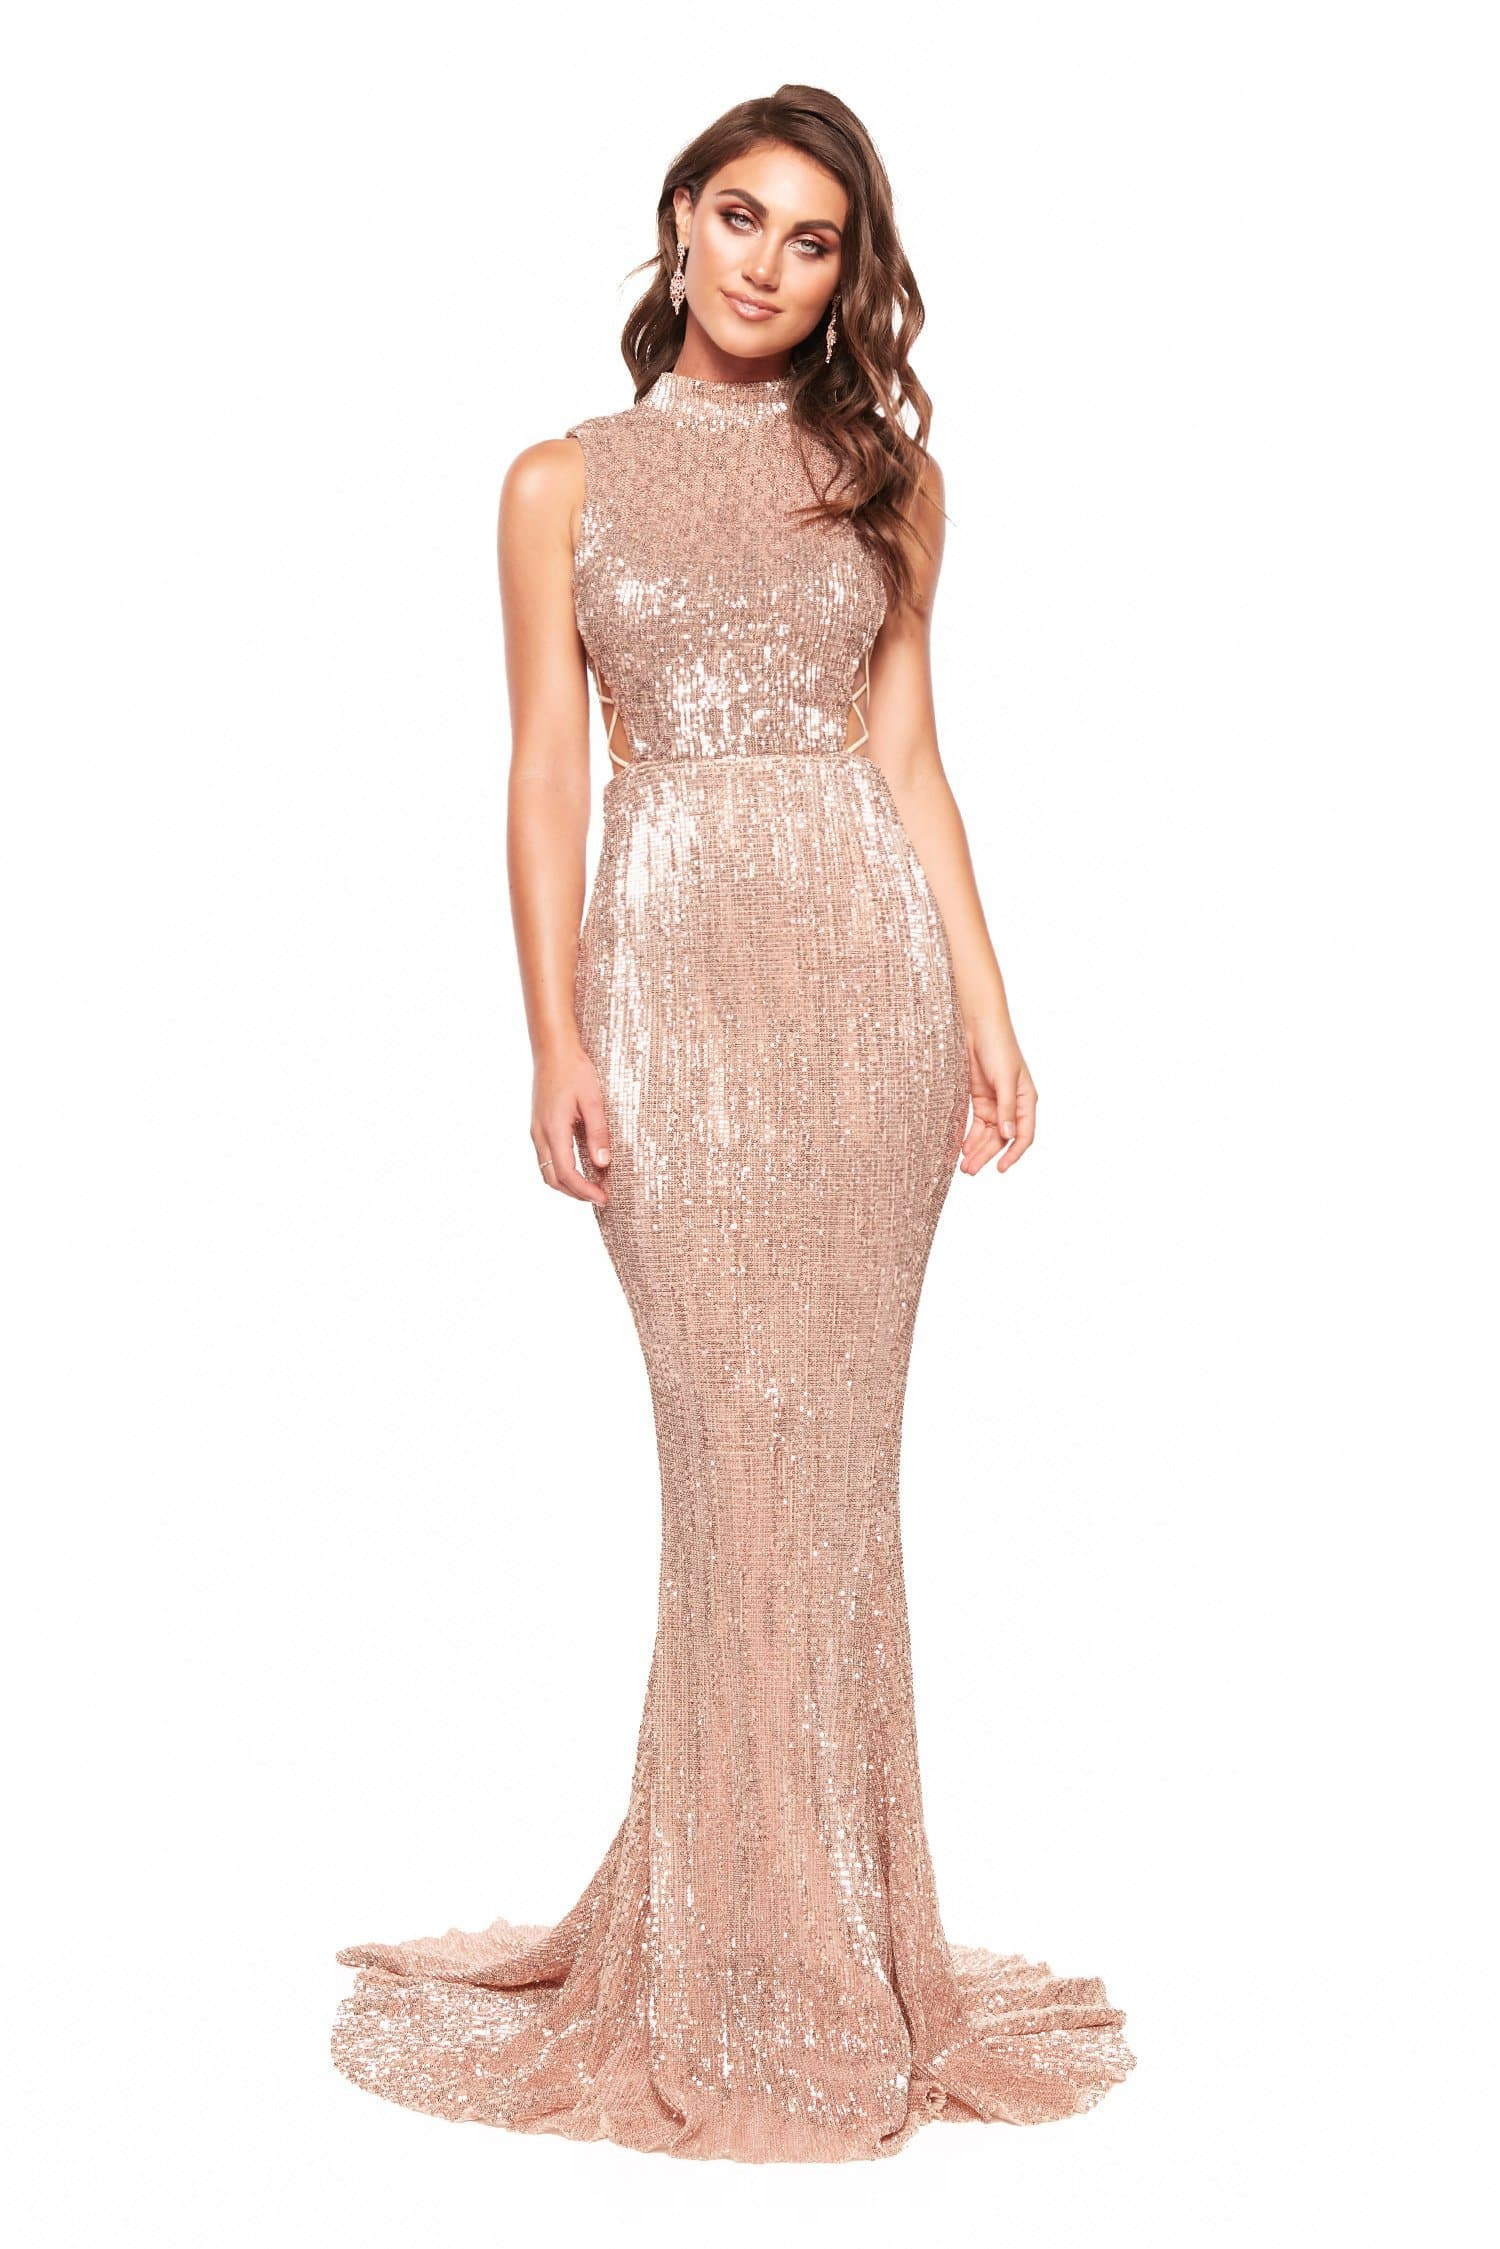 A&N Harper - Rose Gold Sequin High Neck Gown with Criss-Cross Sides